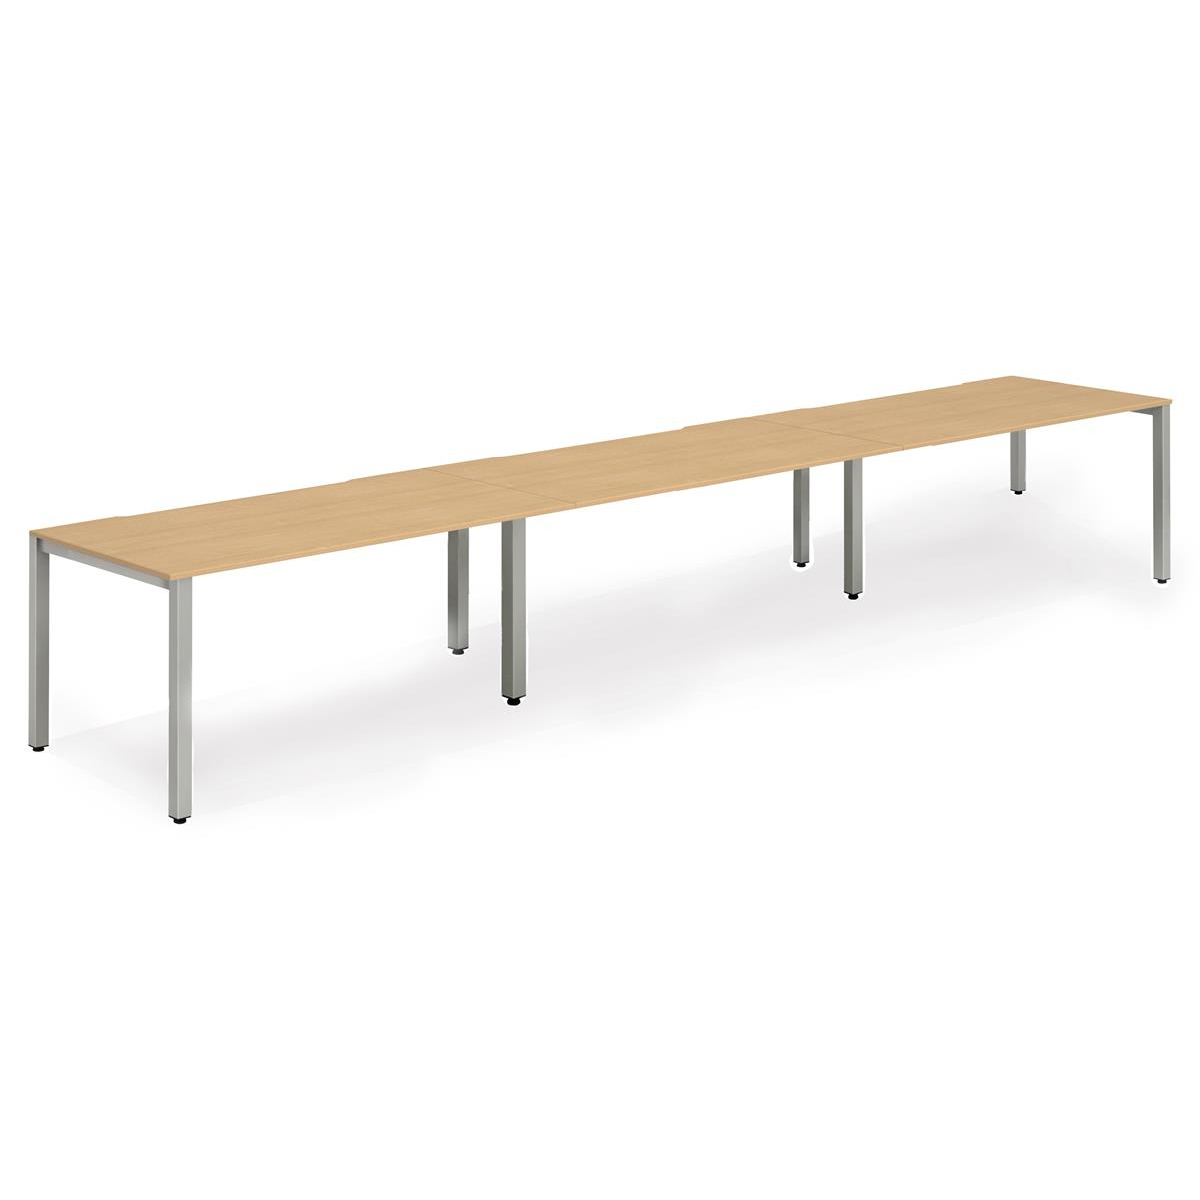 Trexus Bench Desk 3 Person Side to Side Configuration Silver Leg 4200x800mm Beech Ref BE417